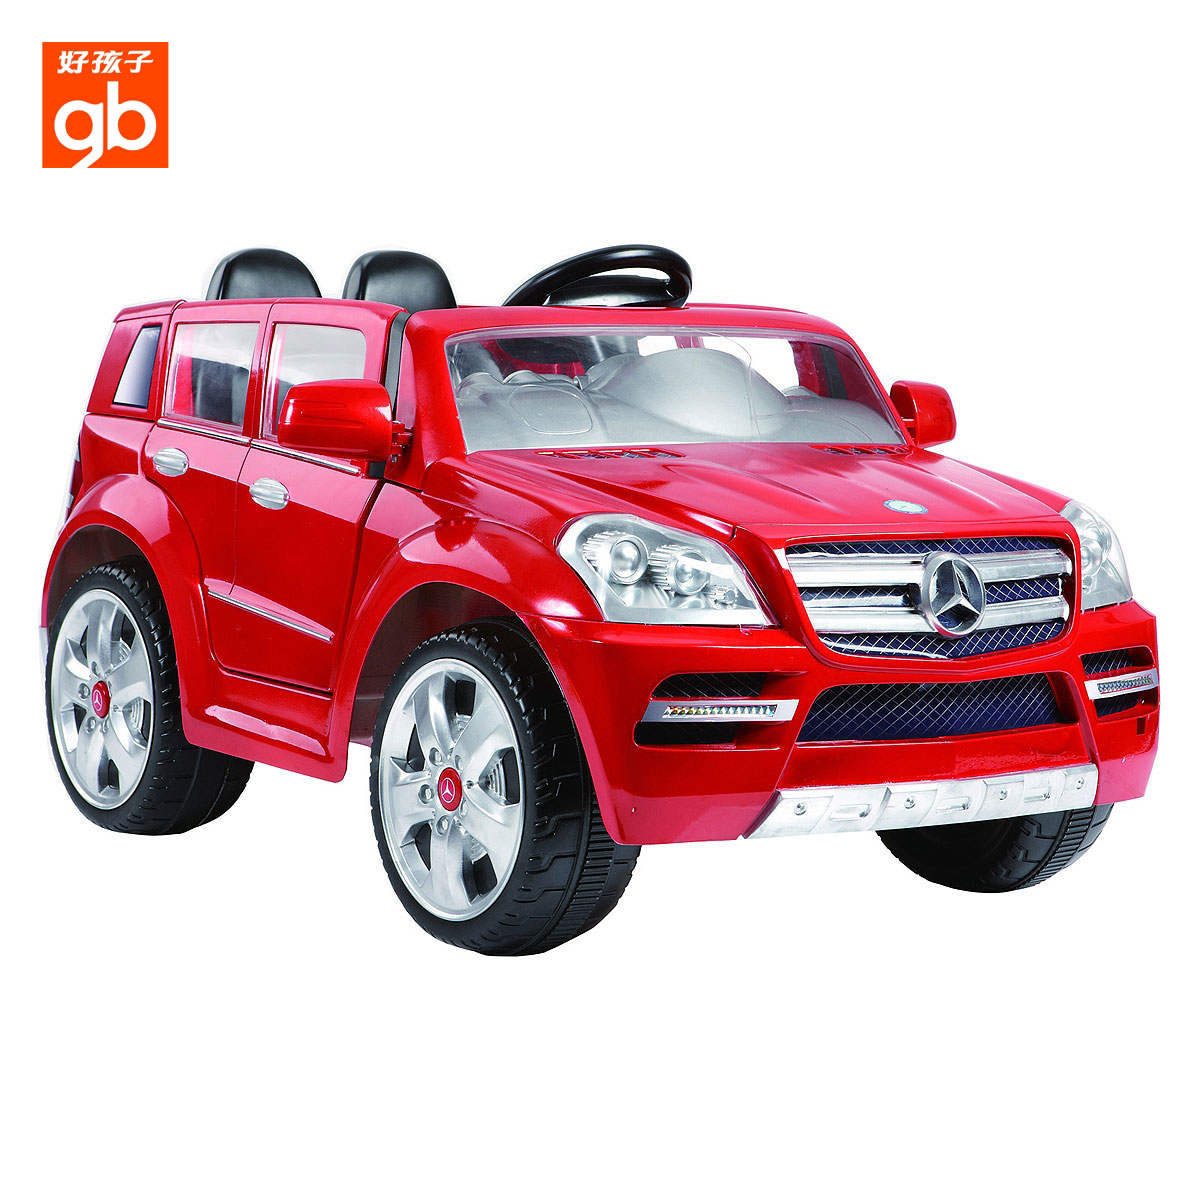 World Famous Brand Gb Ride On Cars W488Q Children Electric